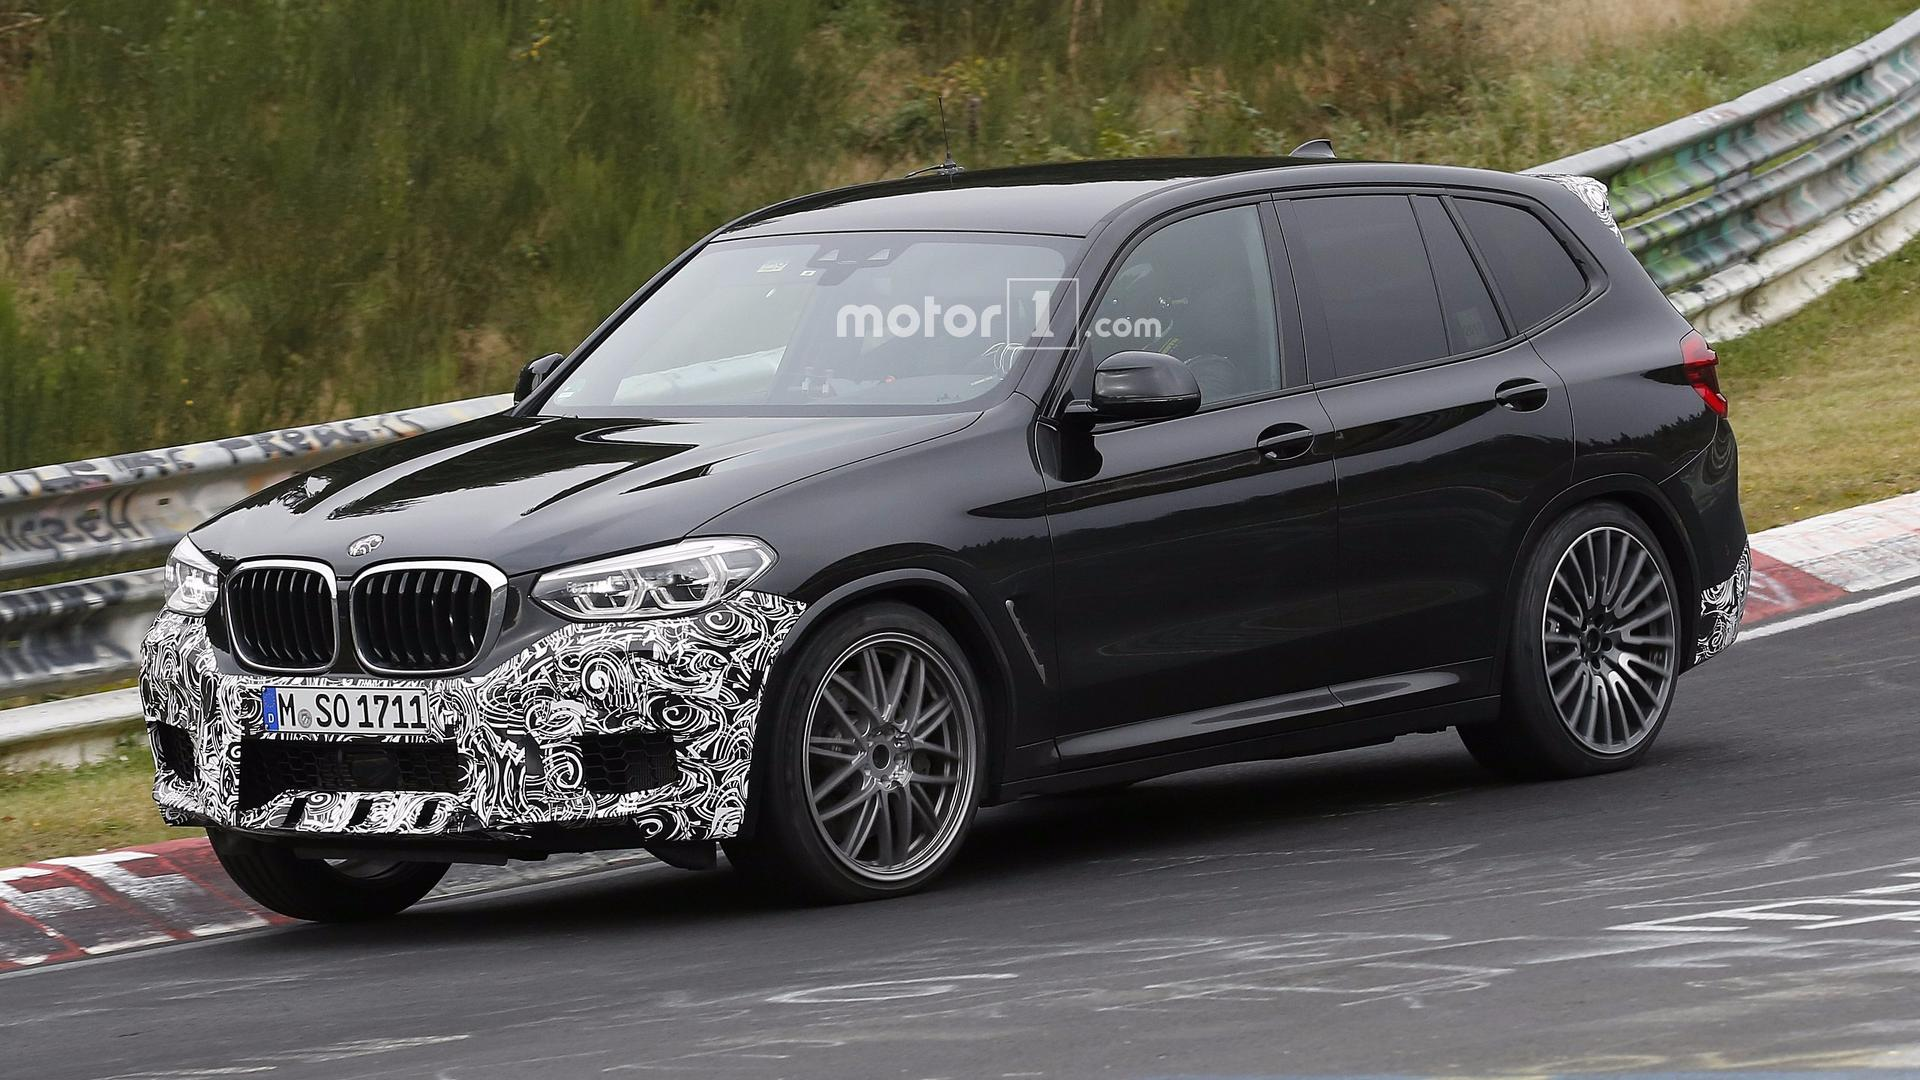 2019 BMW X3 M Caught By The Spy Camera At Nurburgring